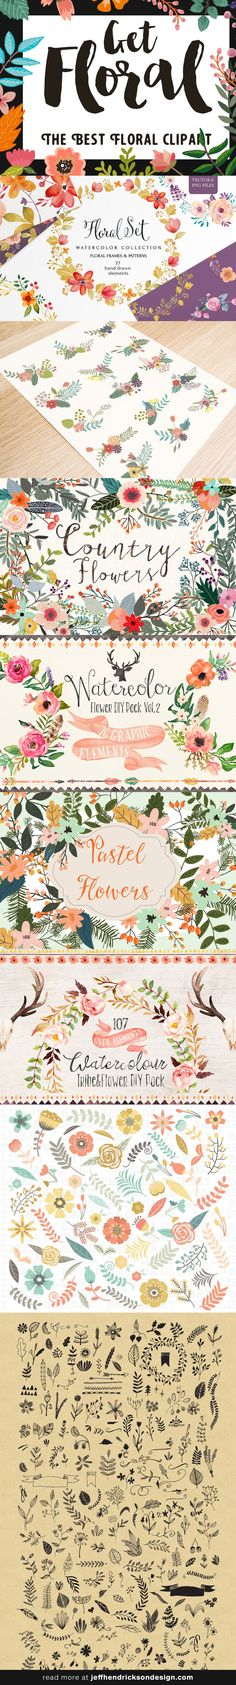 The best floral clipart for identity, branding, wedding invitations...  #flowers #botanical